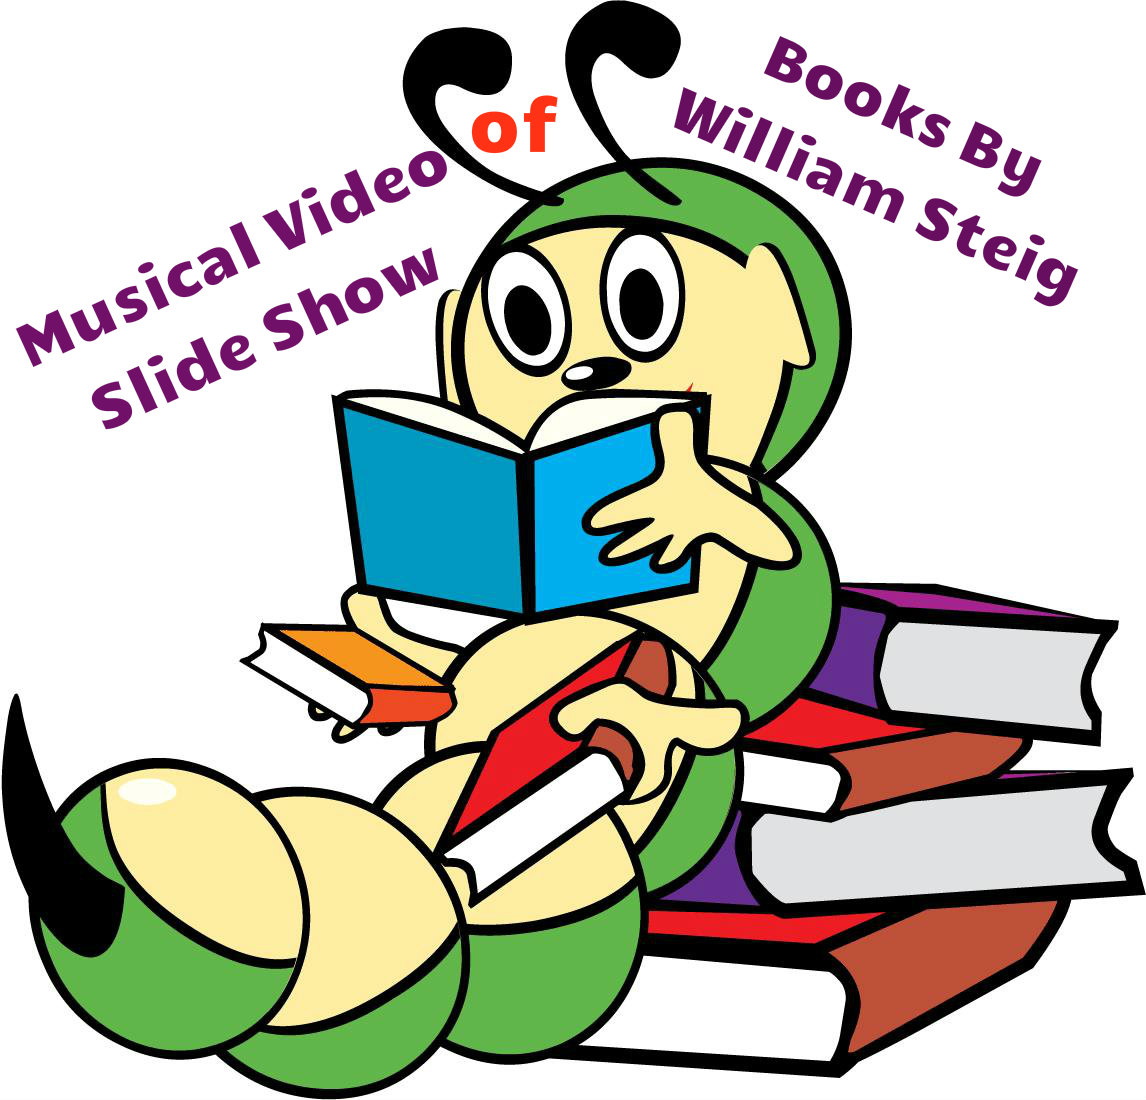 Children Books by William Steig | Readyteacher.com